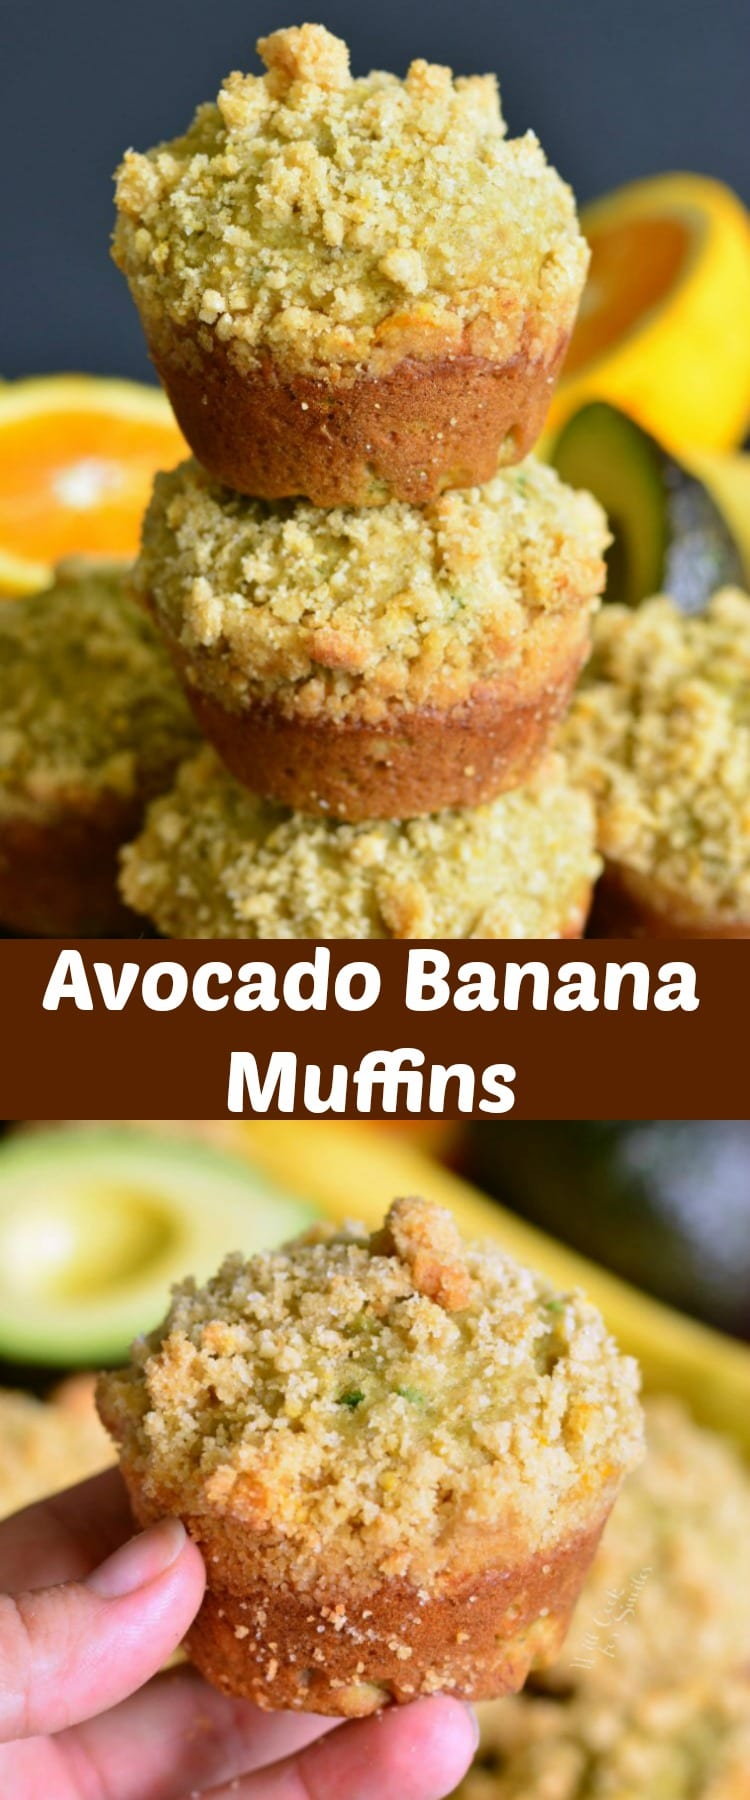 Avocado Banana Muffins with Orange Streusel. Soft, comforting banana muffins made with an addition of avocado, orange essence, and topped with sweet, orange flavored streusel. #muffins #breakfast #avocado #banana #snack #easybreakfast #orange